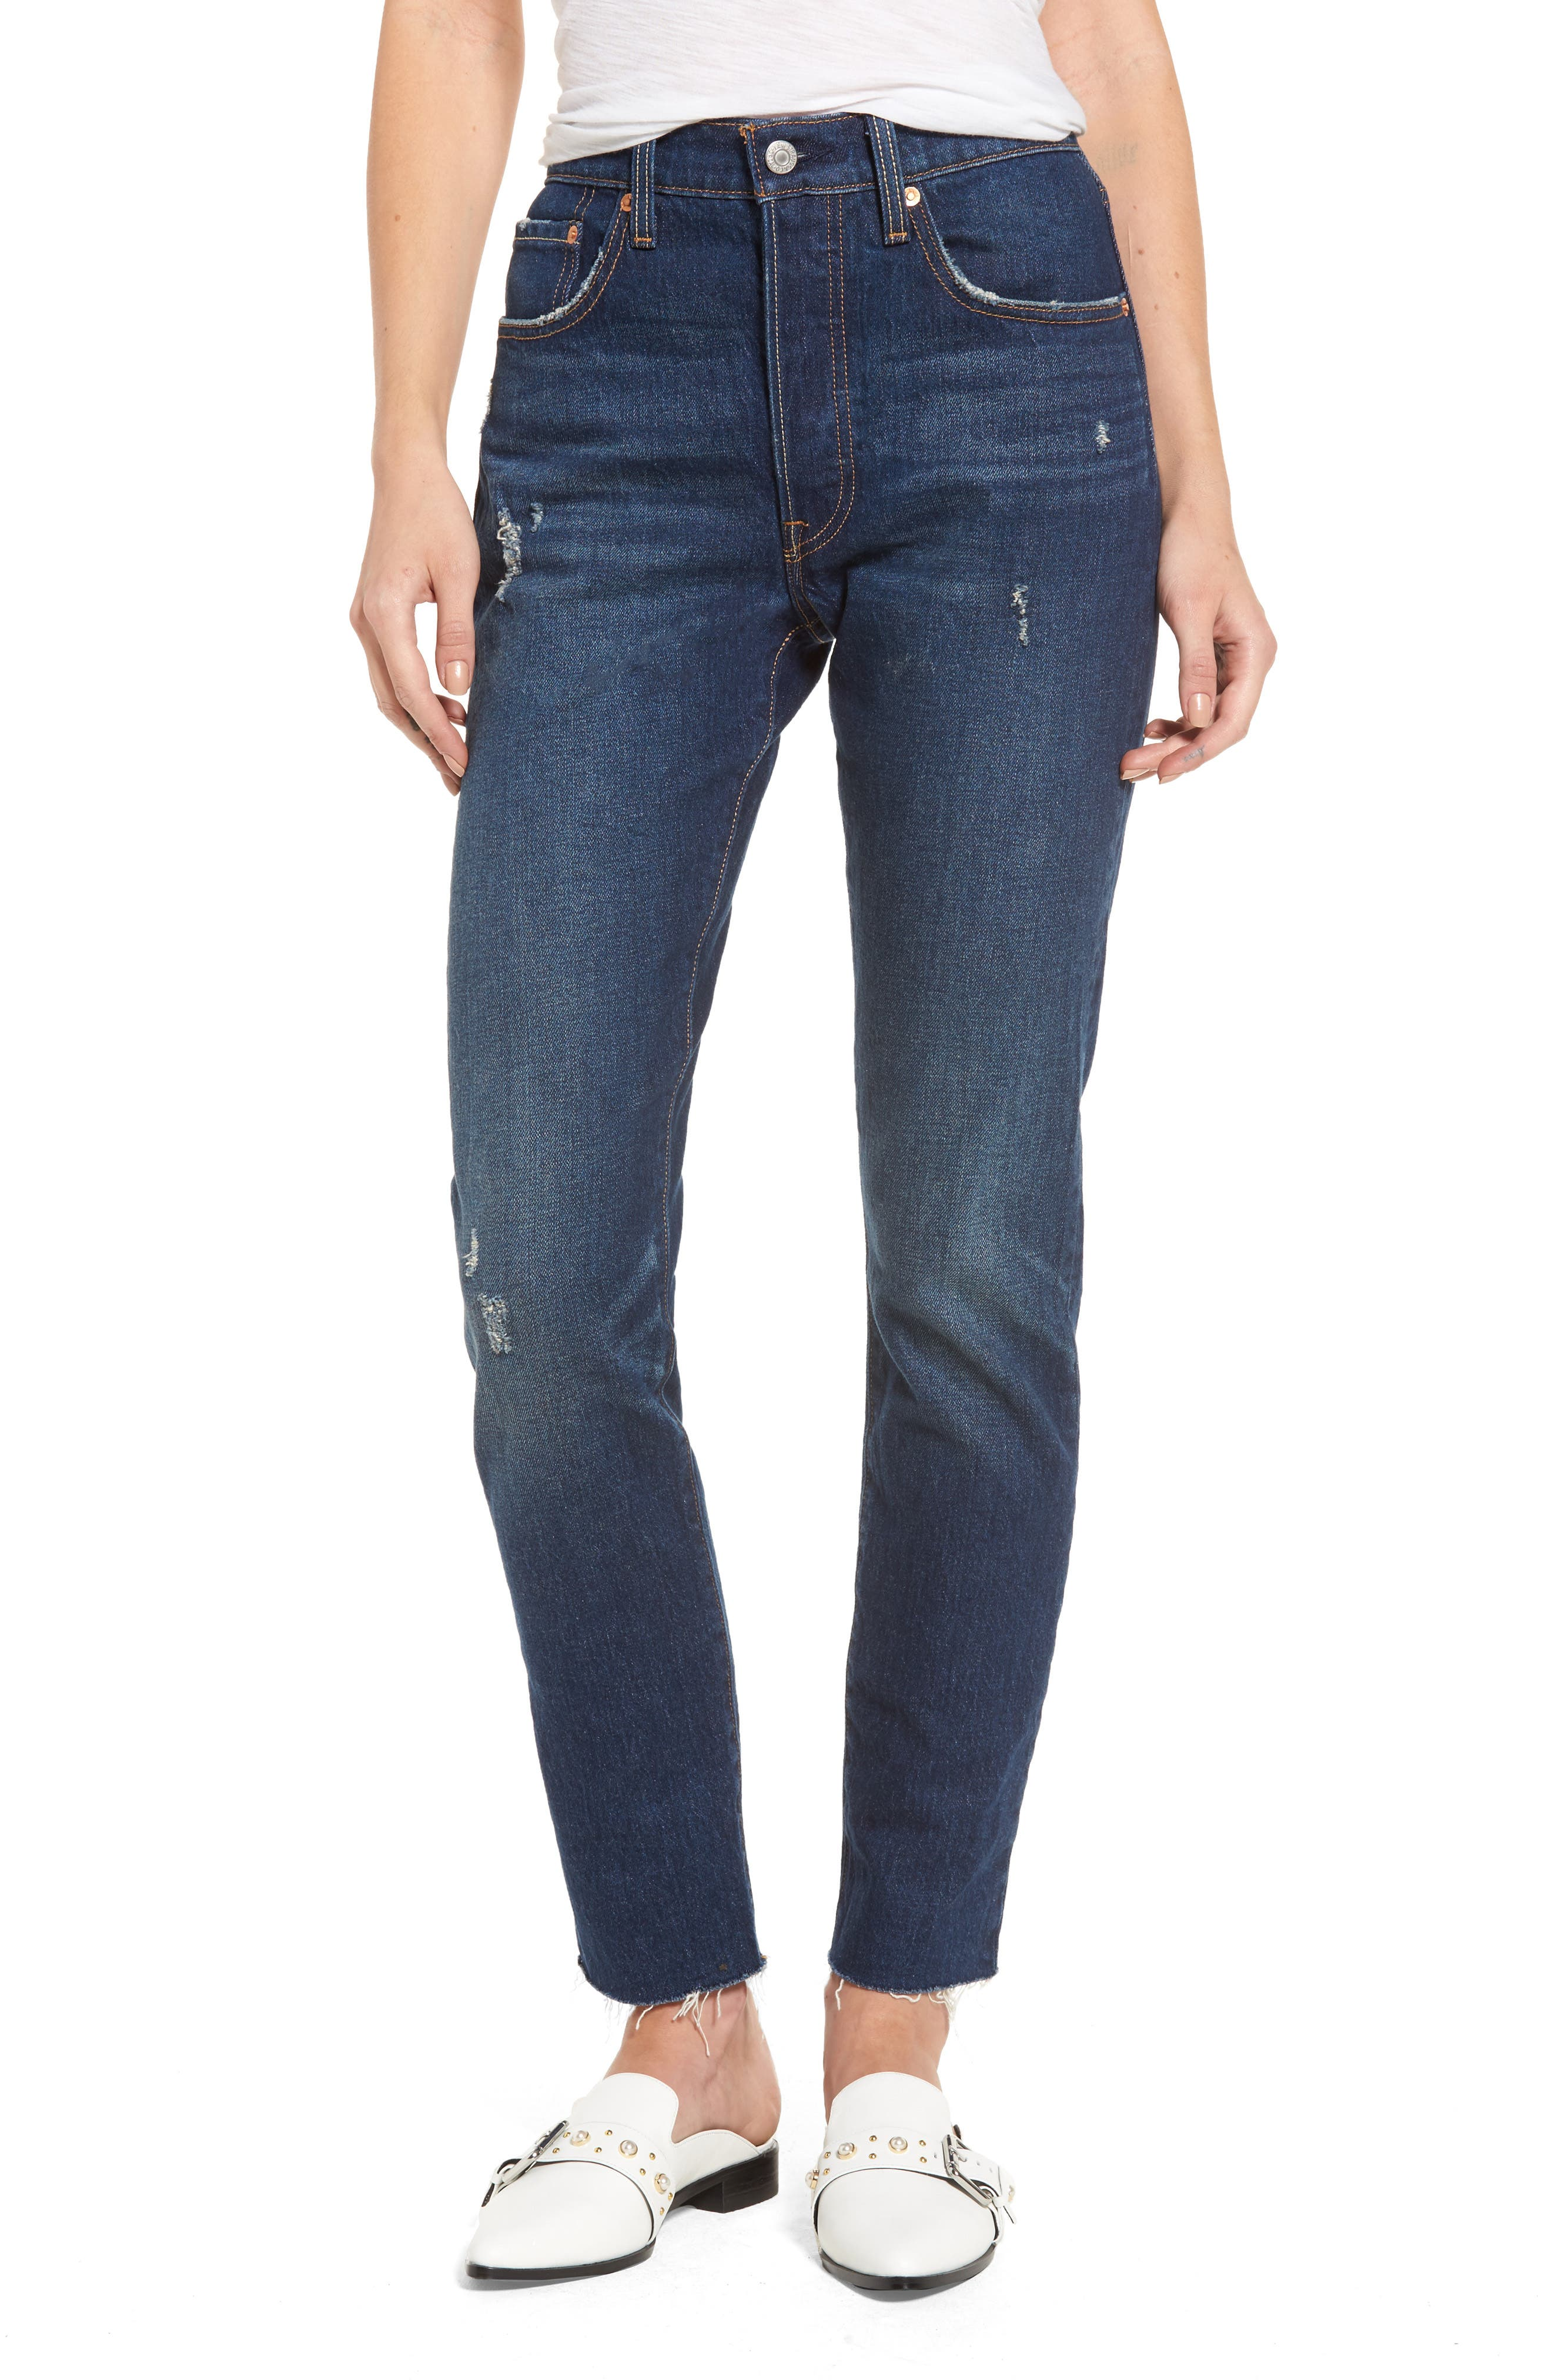 Levis<sup>®</sup> 501 Raw Hem Skinny Jeans,                         Main,                         color,